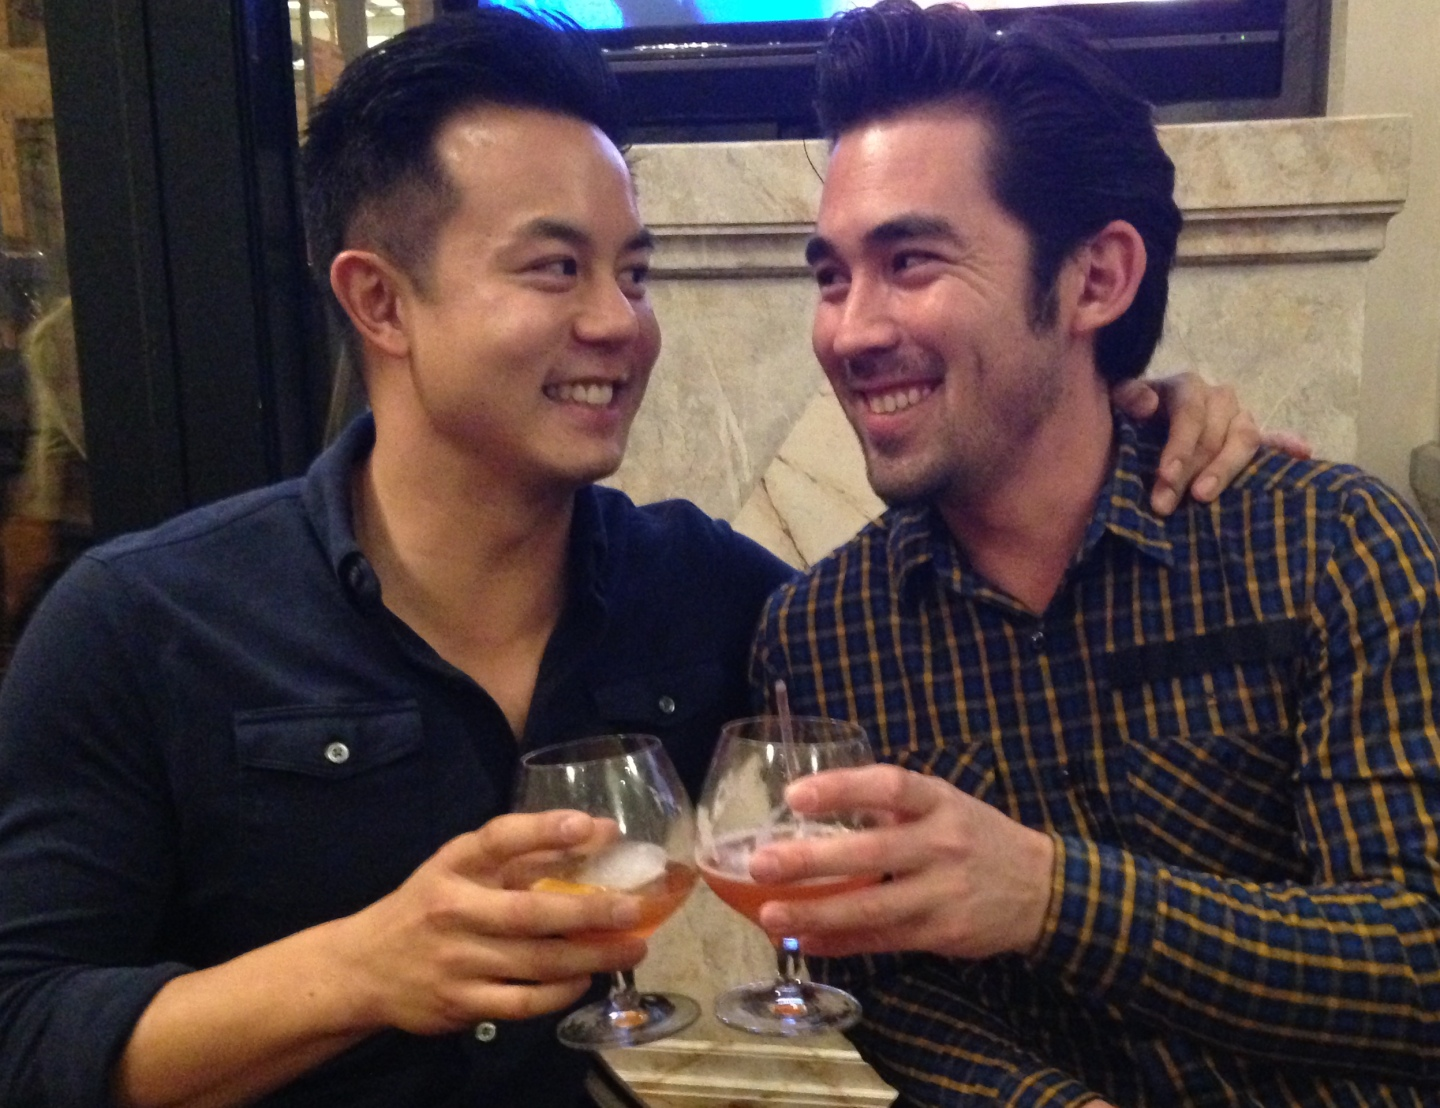 The upside of a good working relationship? You also have a great wingman, says Mike Prestano, right, of Jon Chintanaroad, left. (April Dembosky/KQED)